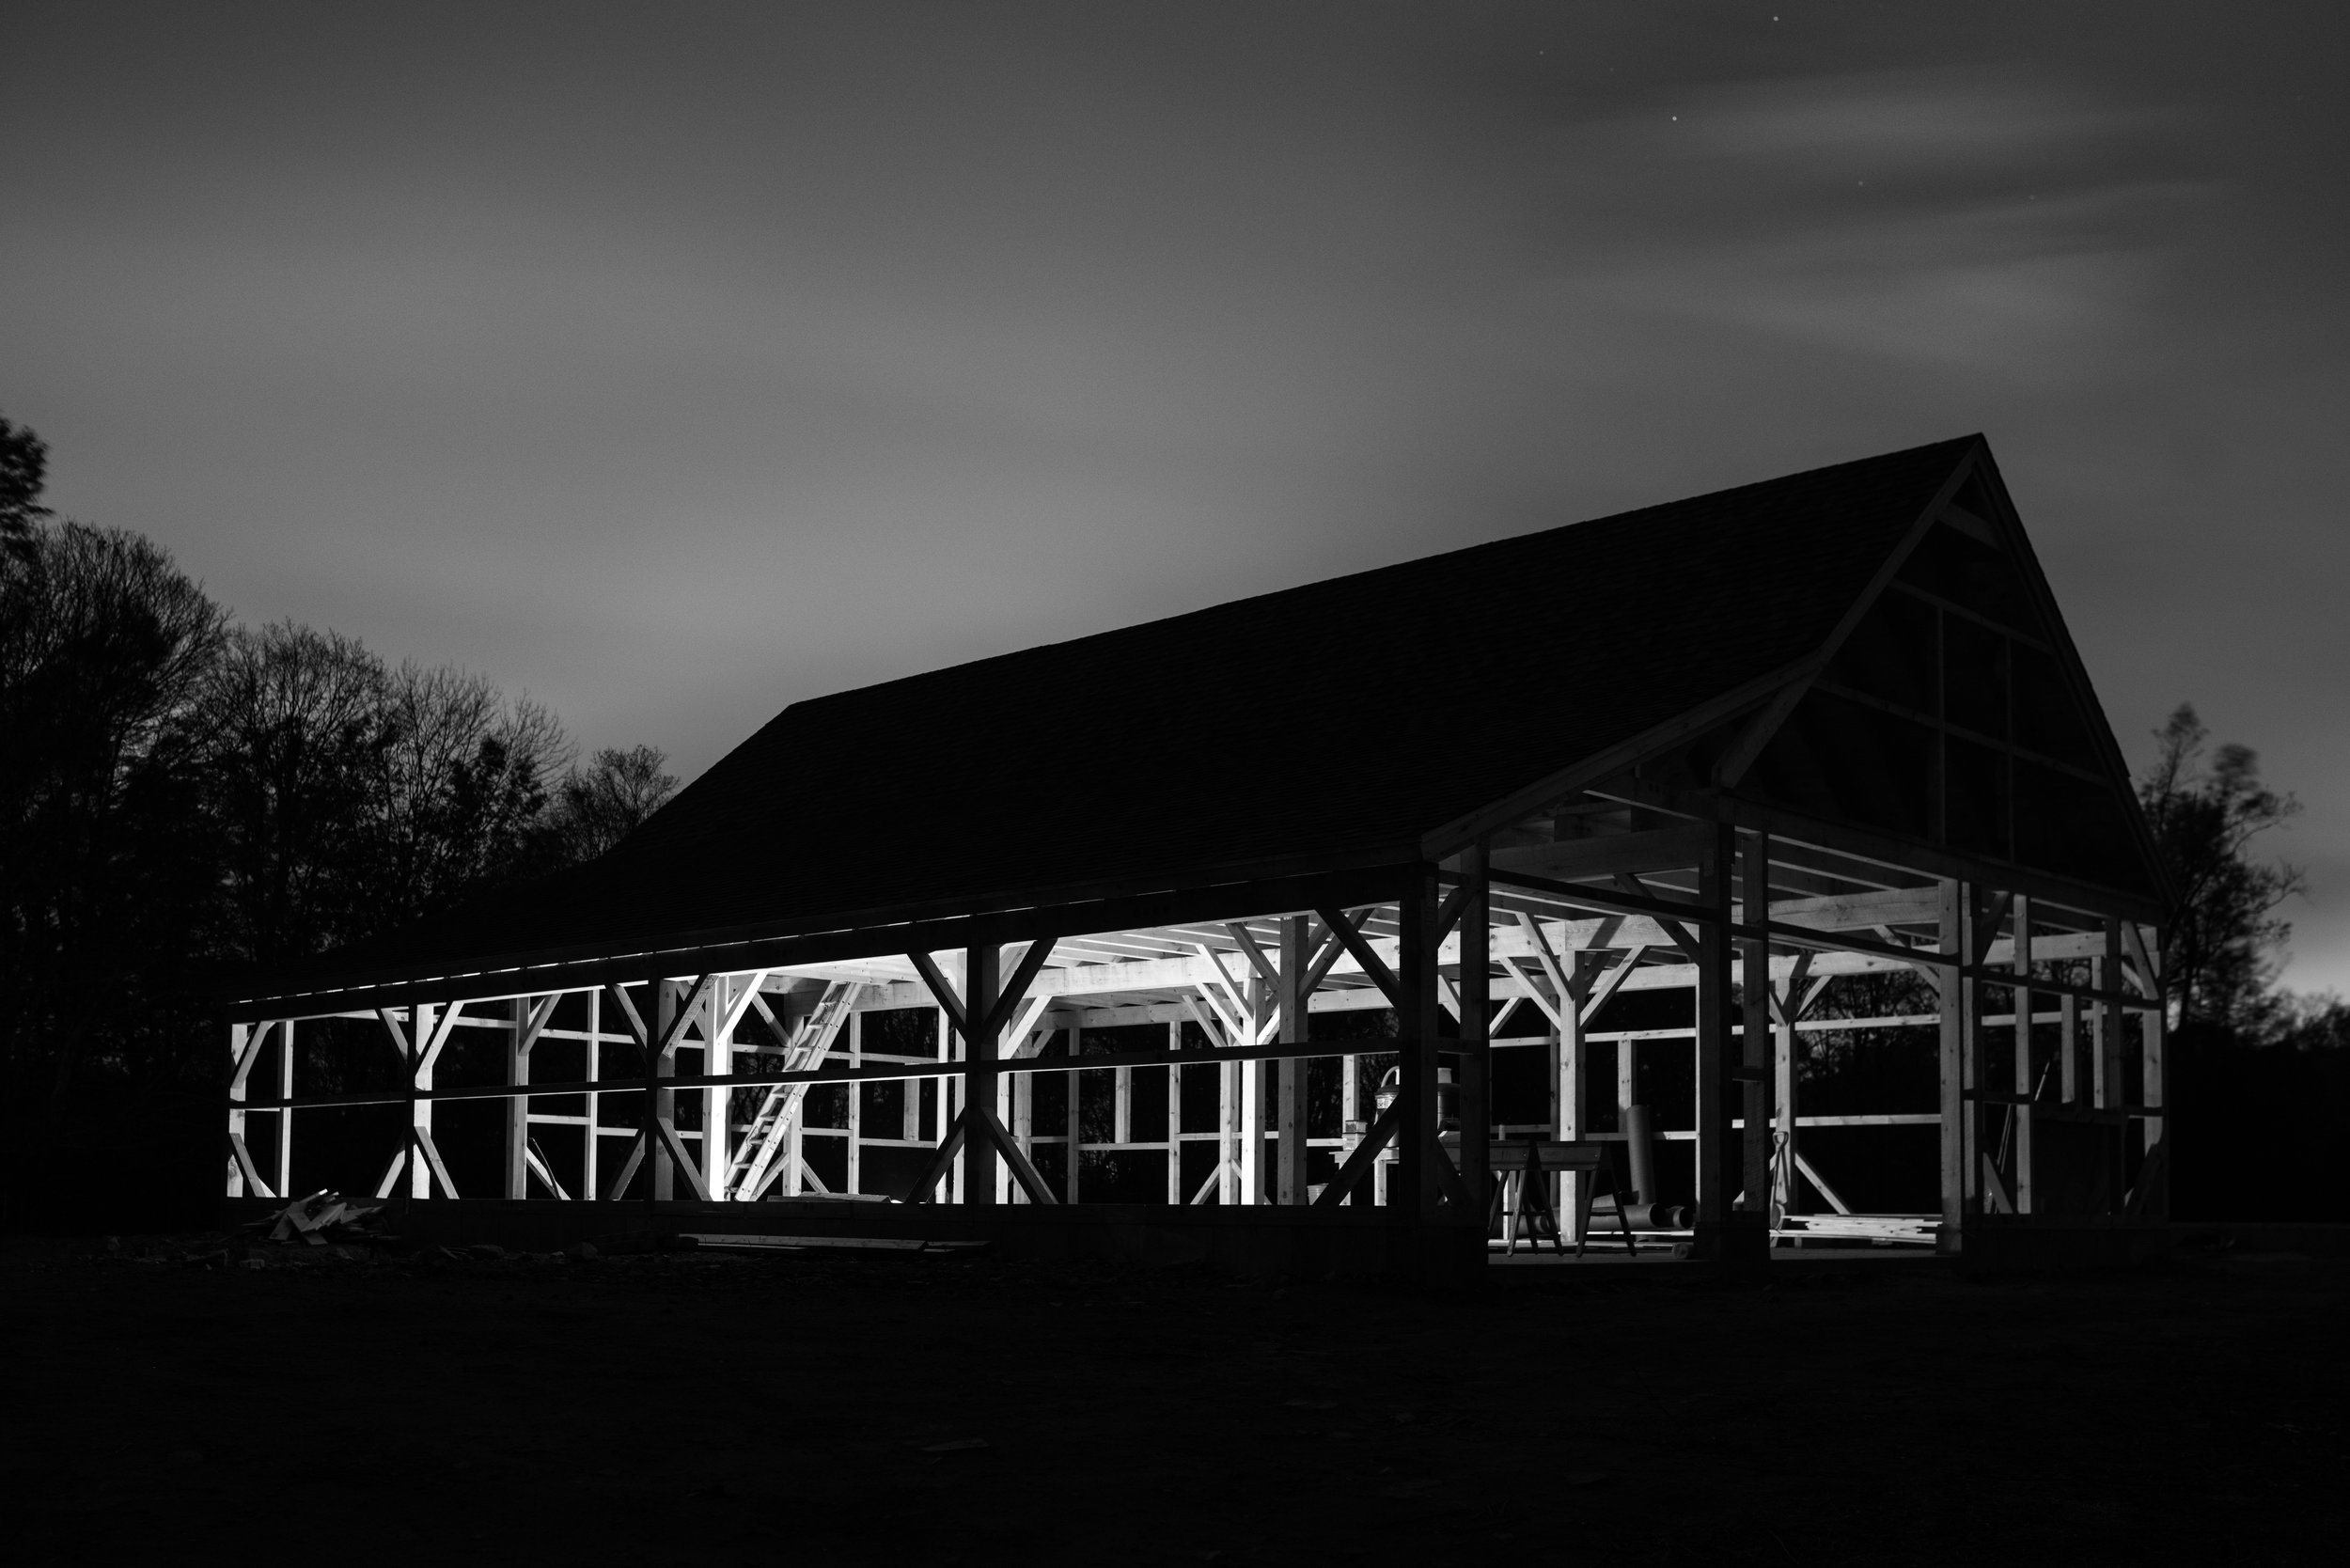 barn_at_night_2.jpg